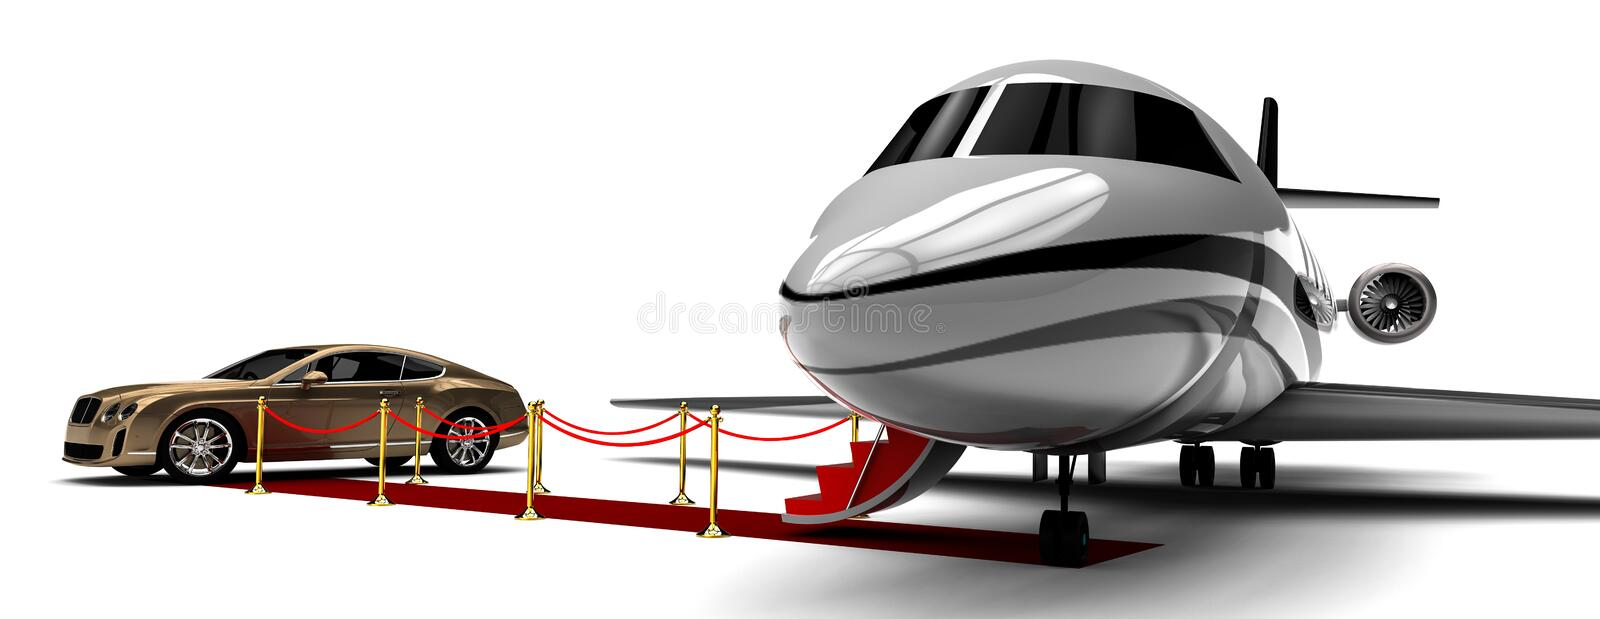 Red carpet private Jet-plane and limousine royalty free illustration